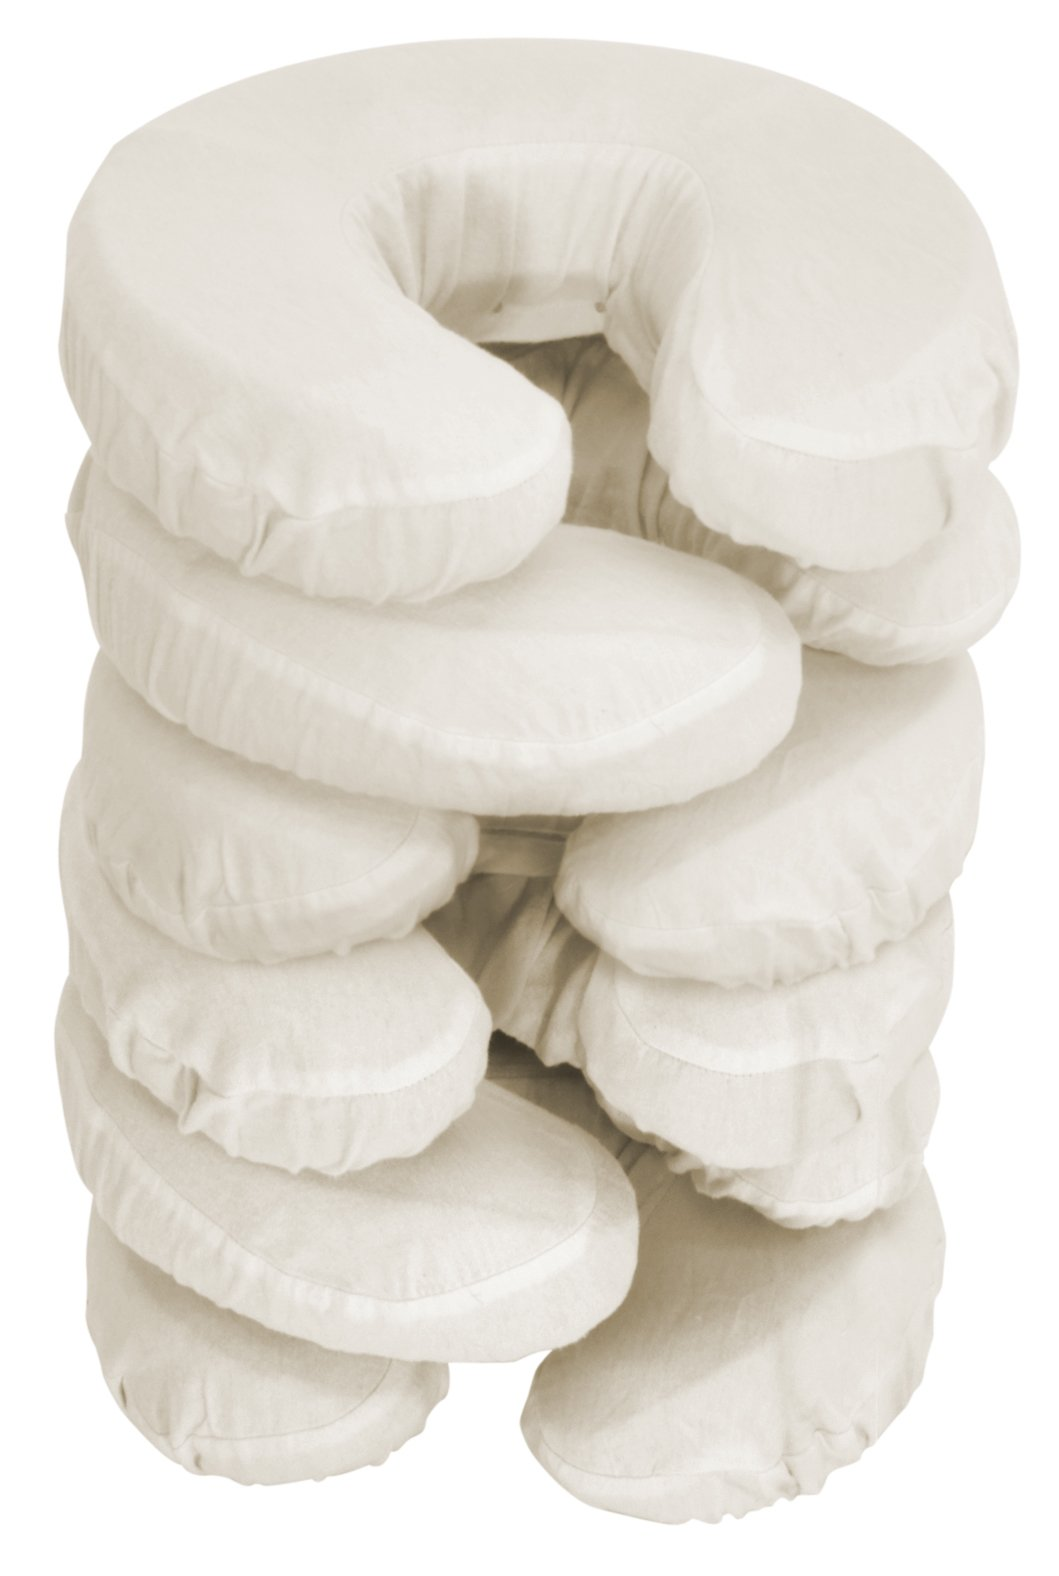 Master Massage Pillow Covers, 6 Pack, Beige by Master Massage